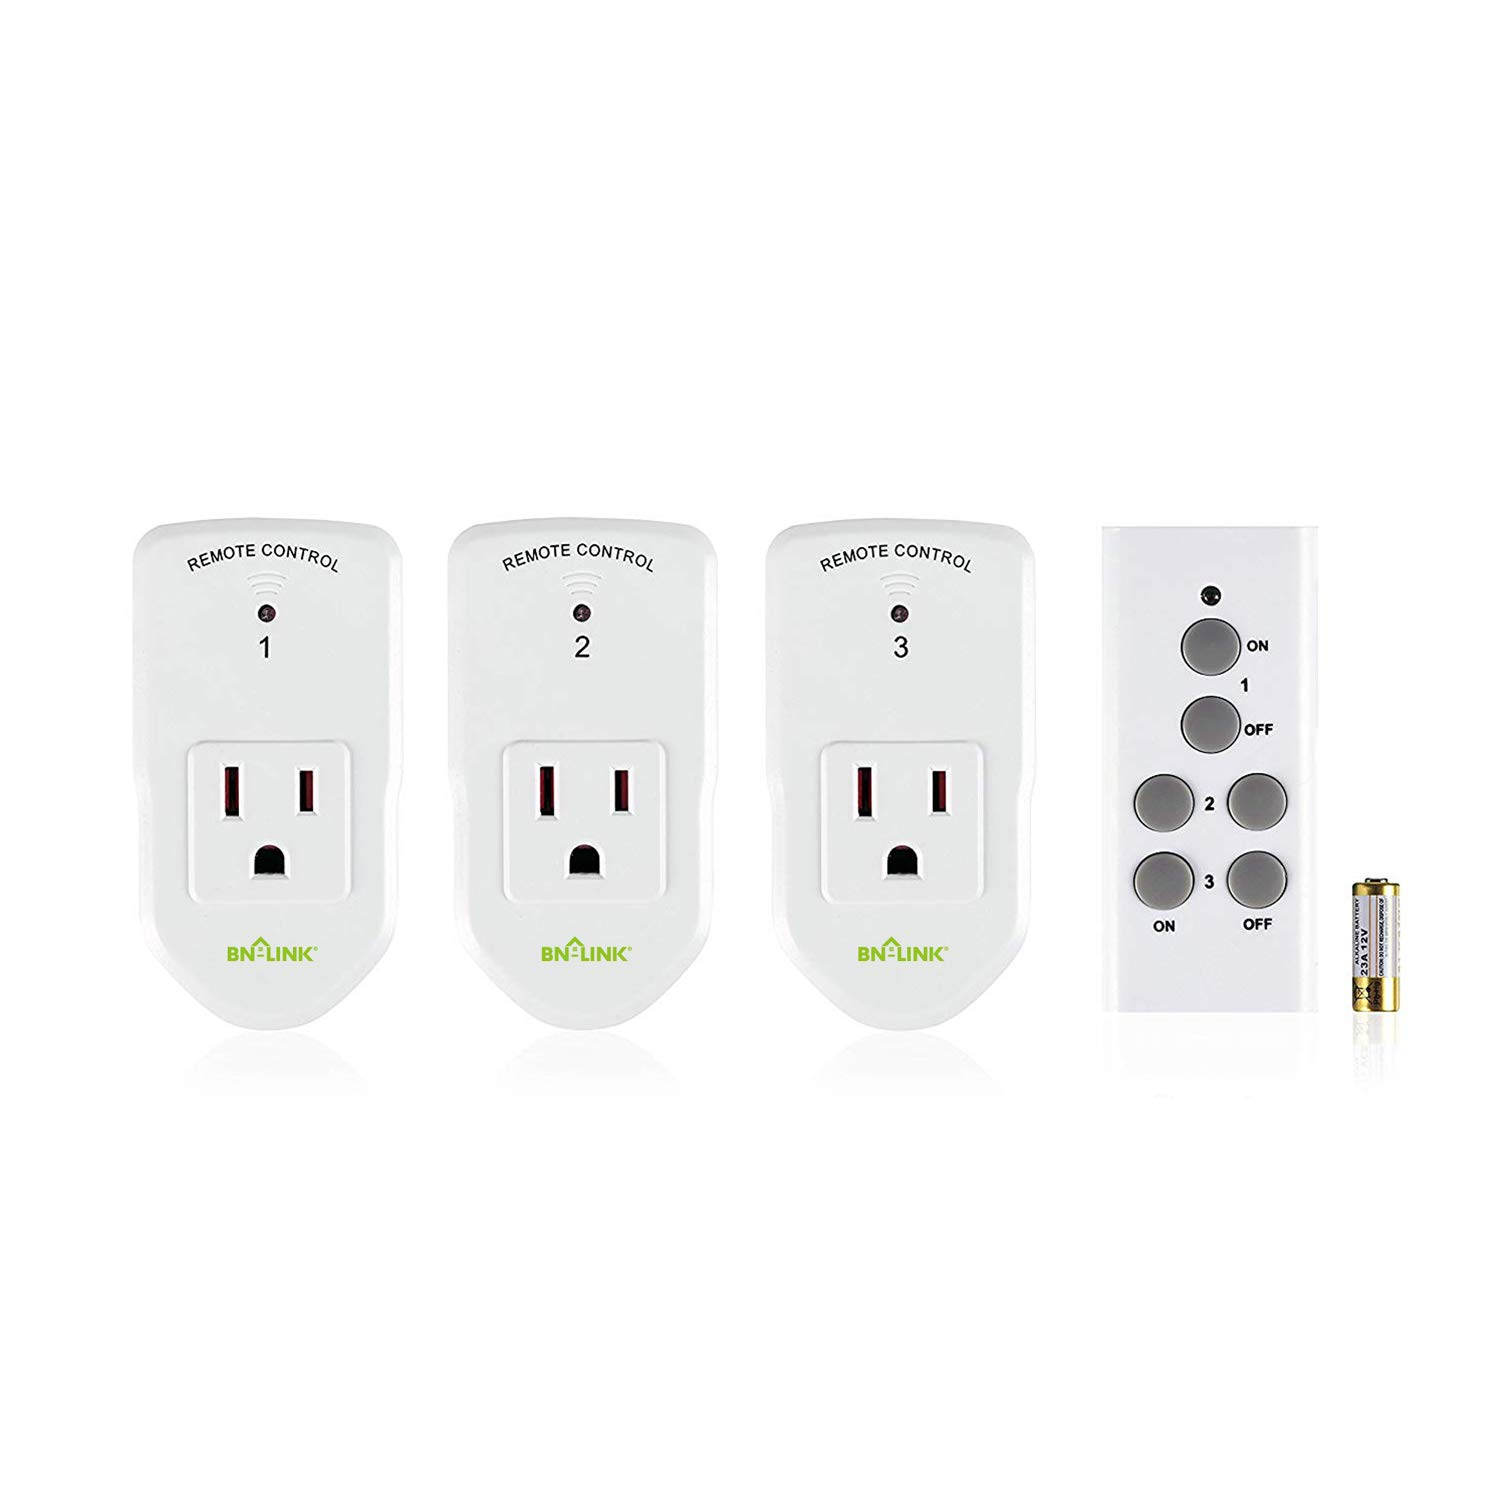 BN-LINK Wireless Remote Control Electrical Outlet Switch for Lights, Fans, Christmas Lights, Small Appliance, Long Range White (Learning Code, 3Rx-1Tx) 1200W/10A: Industrial & Scientific